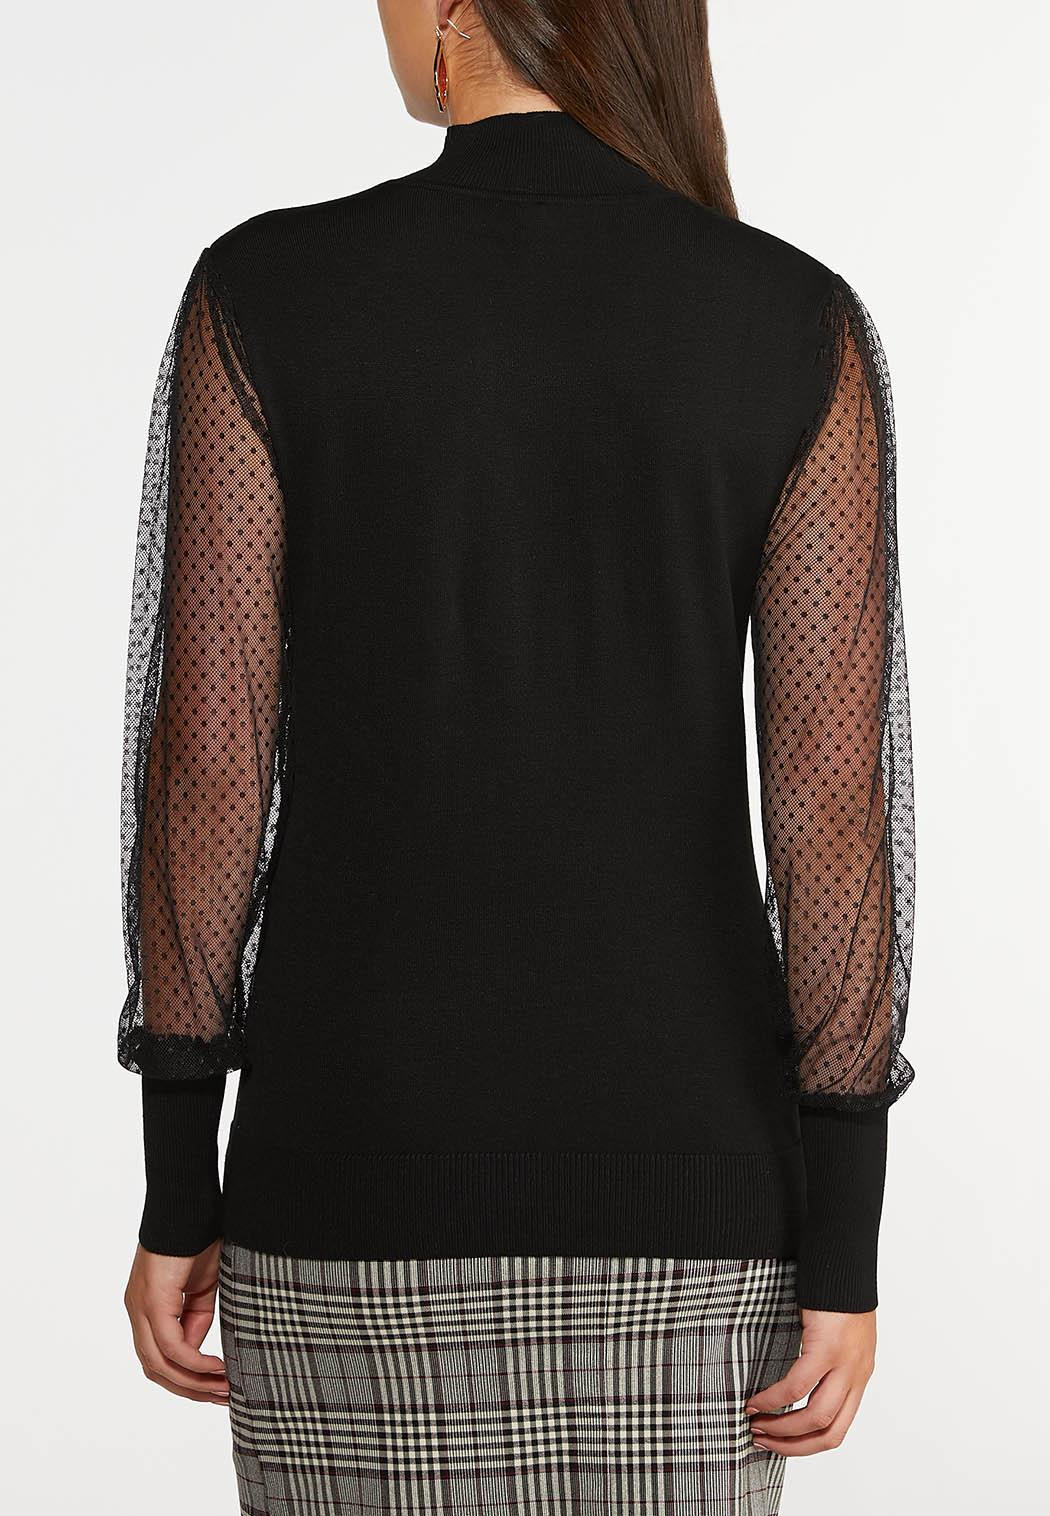 Dotted Mesh Sleeve Top (Item #44378786)